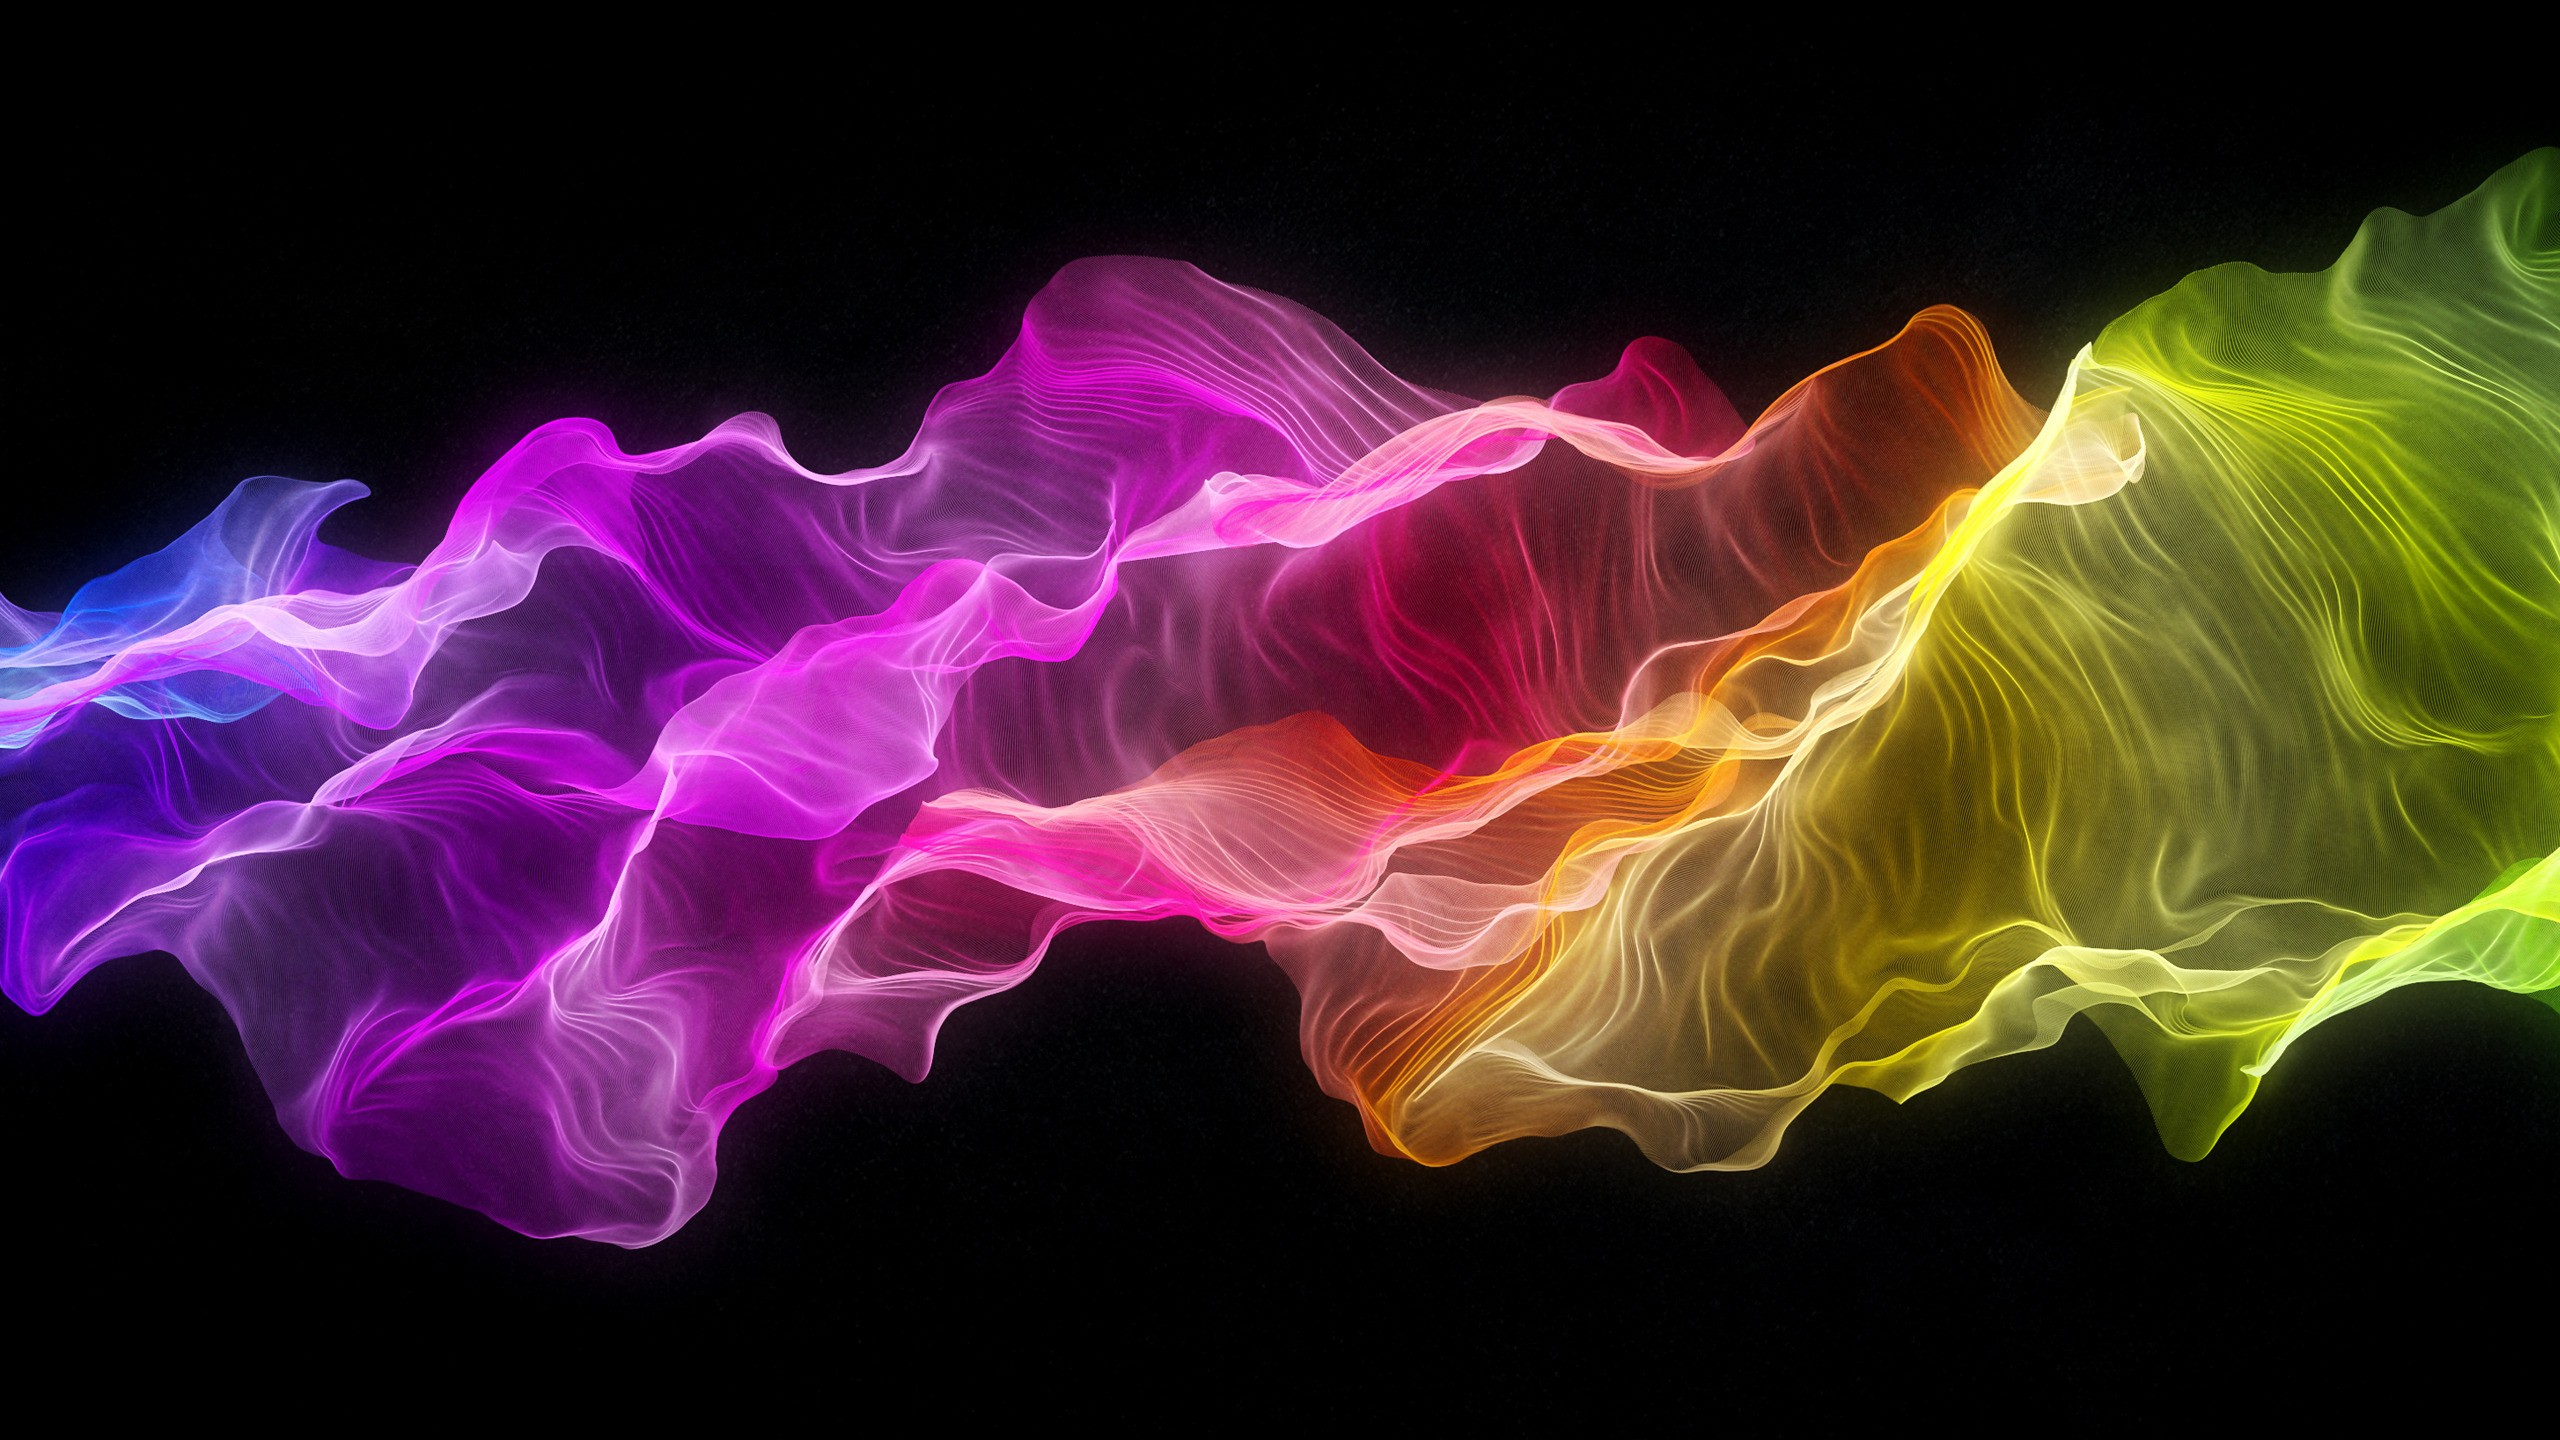 colorful-flame-2560x1440-wide-wallpapers.net